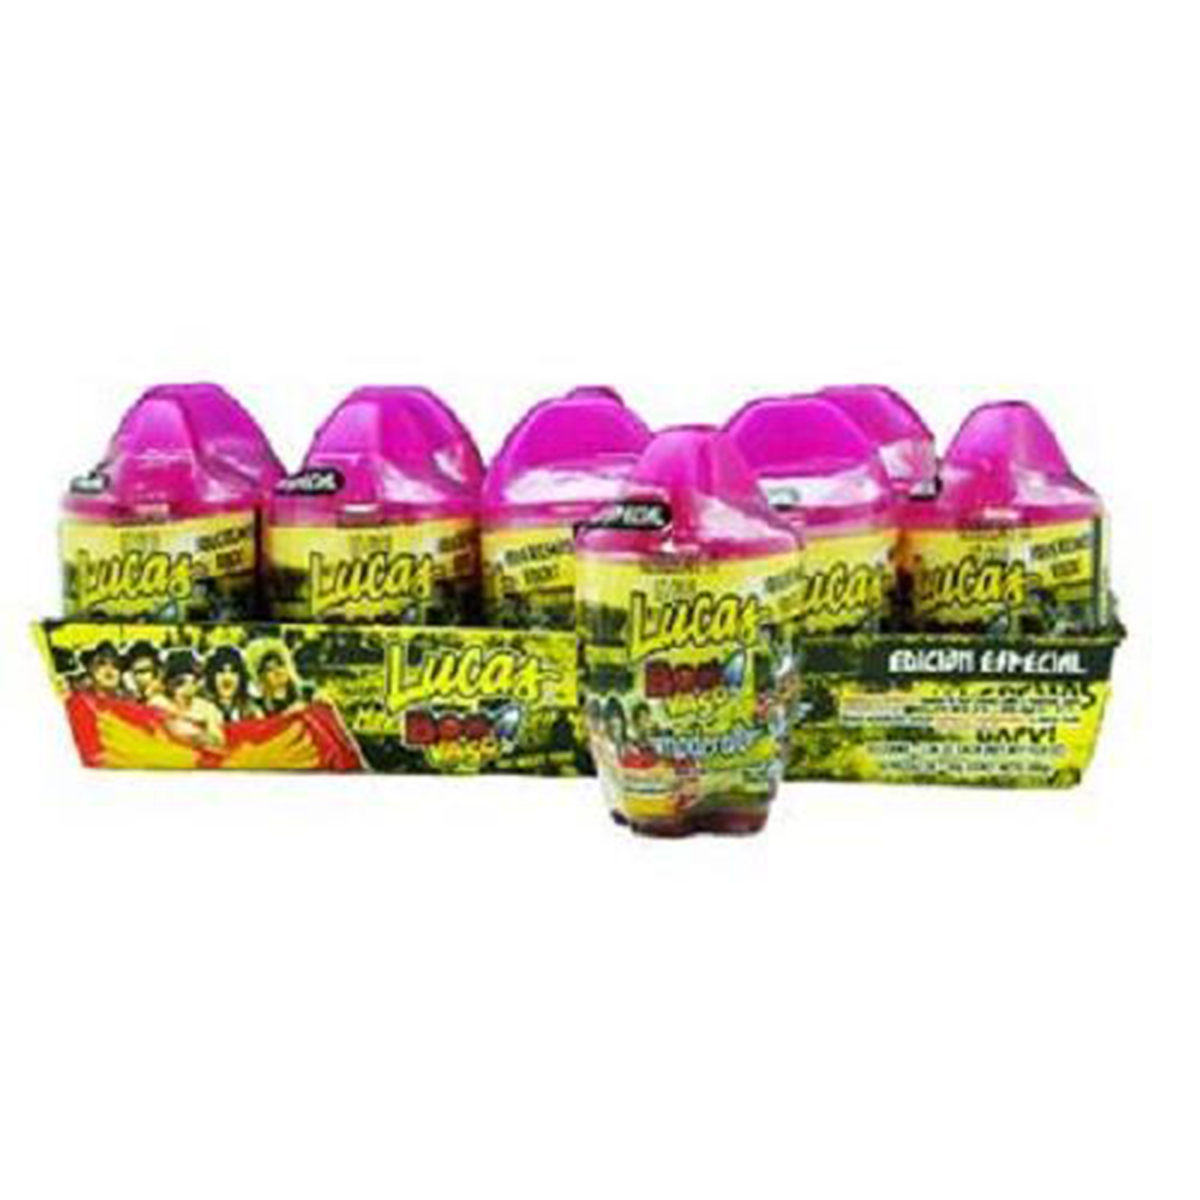 ALAMO CANDY CO. GUMMY WORMS BLOOD CRAWLERS CRAWLING IN CHAMOY AND CHILI SWEET AND SOUR 8 OZ